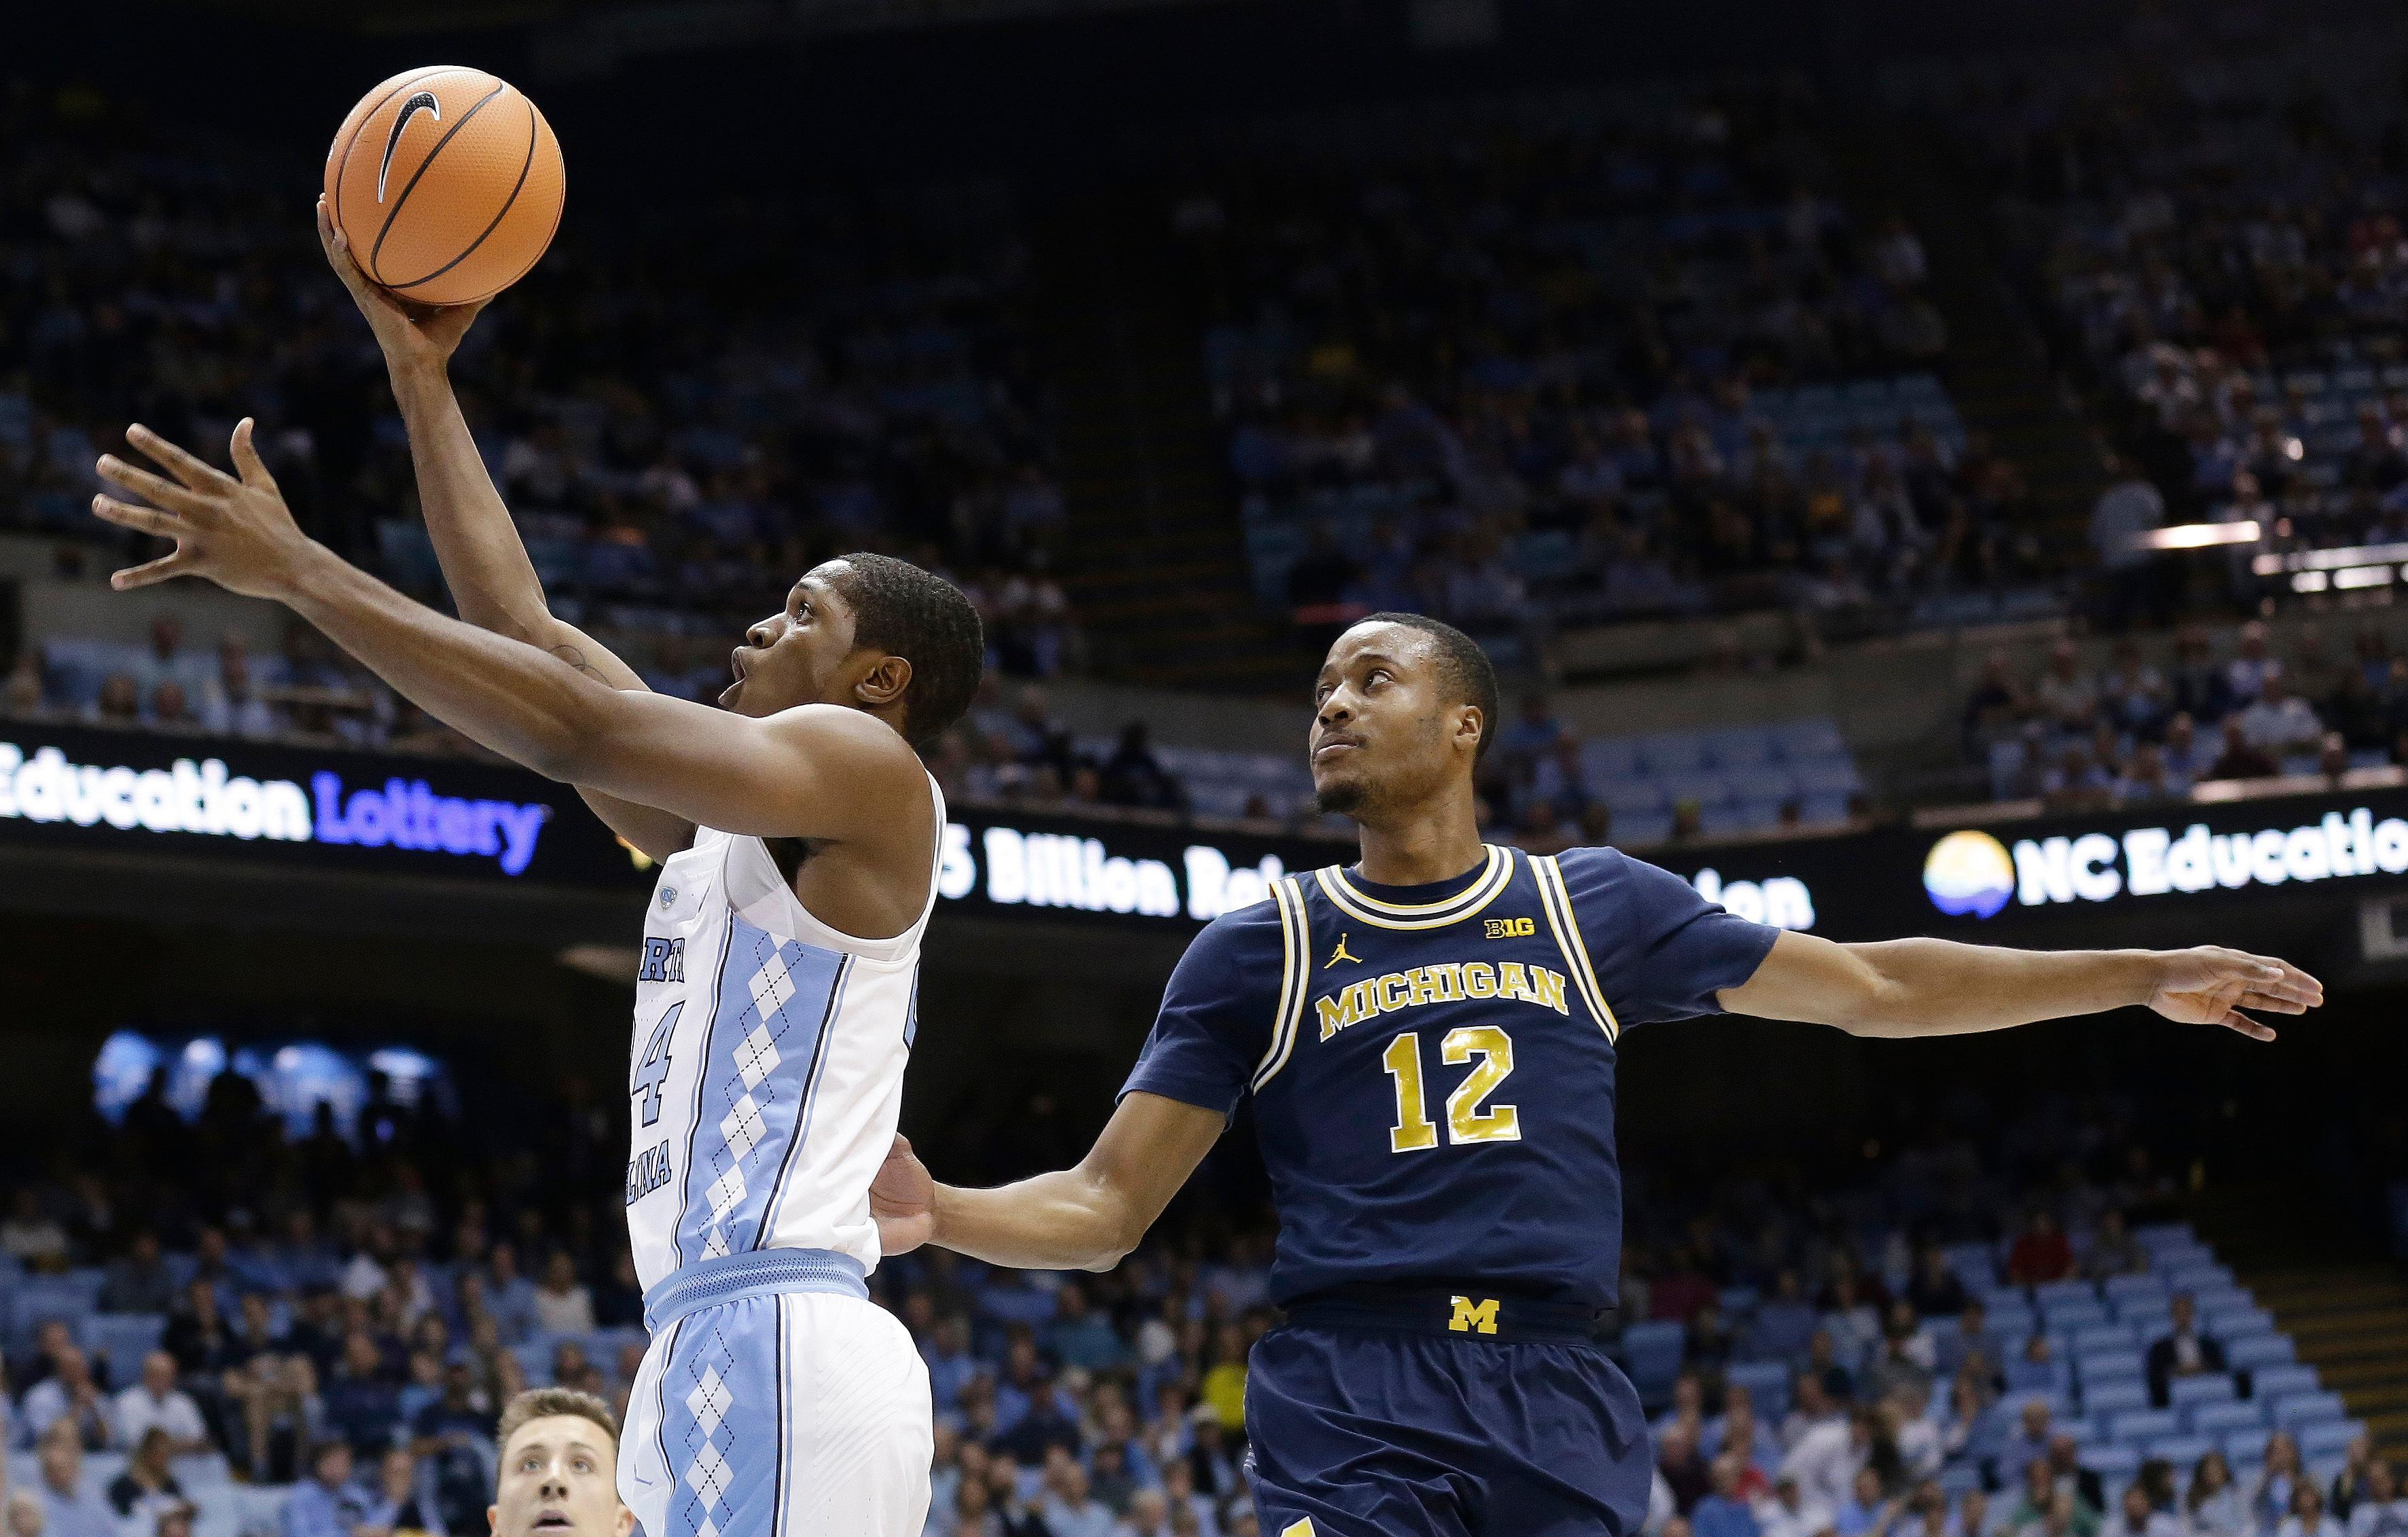 North Carolina's Kenny Williams drives to the basket while Michigan's Muhammad-Ali Abdur-Rahkman (12) defends during the first half of an NCAA college basketball game in Chapel Hill, N.C., Wednesday, Nov. 29, 2017. (AP Photo/Gerry Broome)